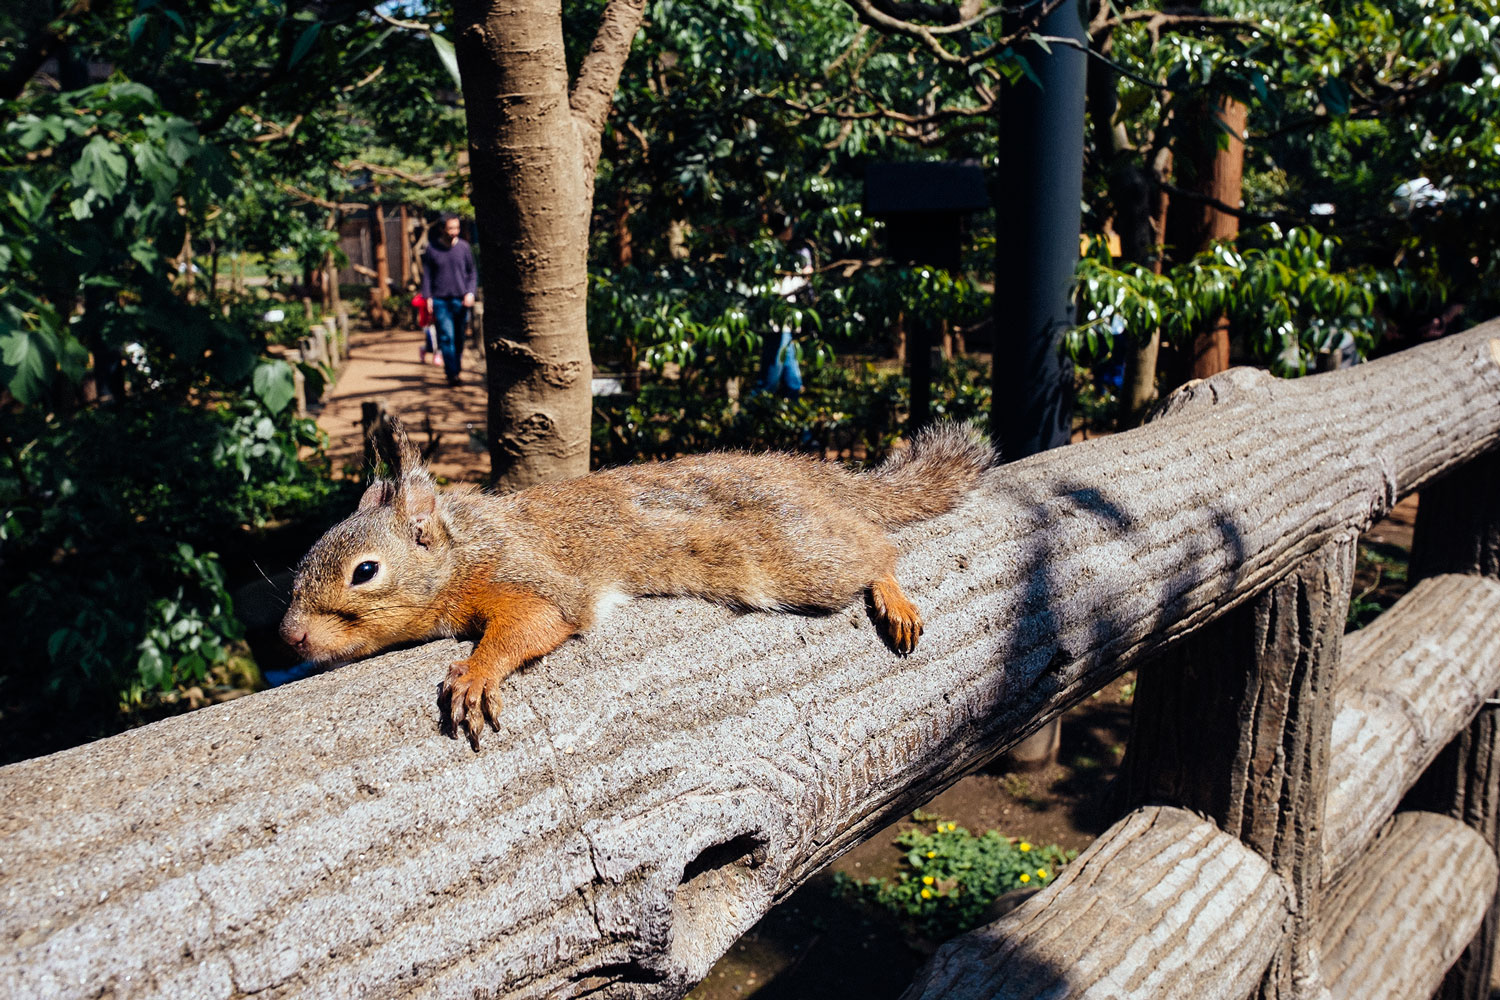 Without any doubt, the most relaxed Squirrel of the whole country.